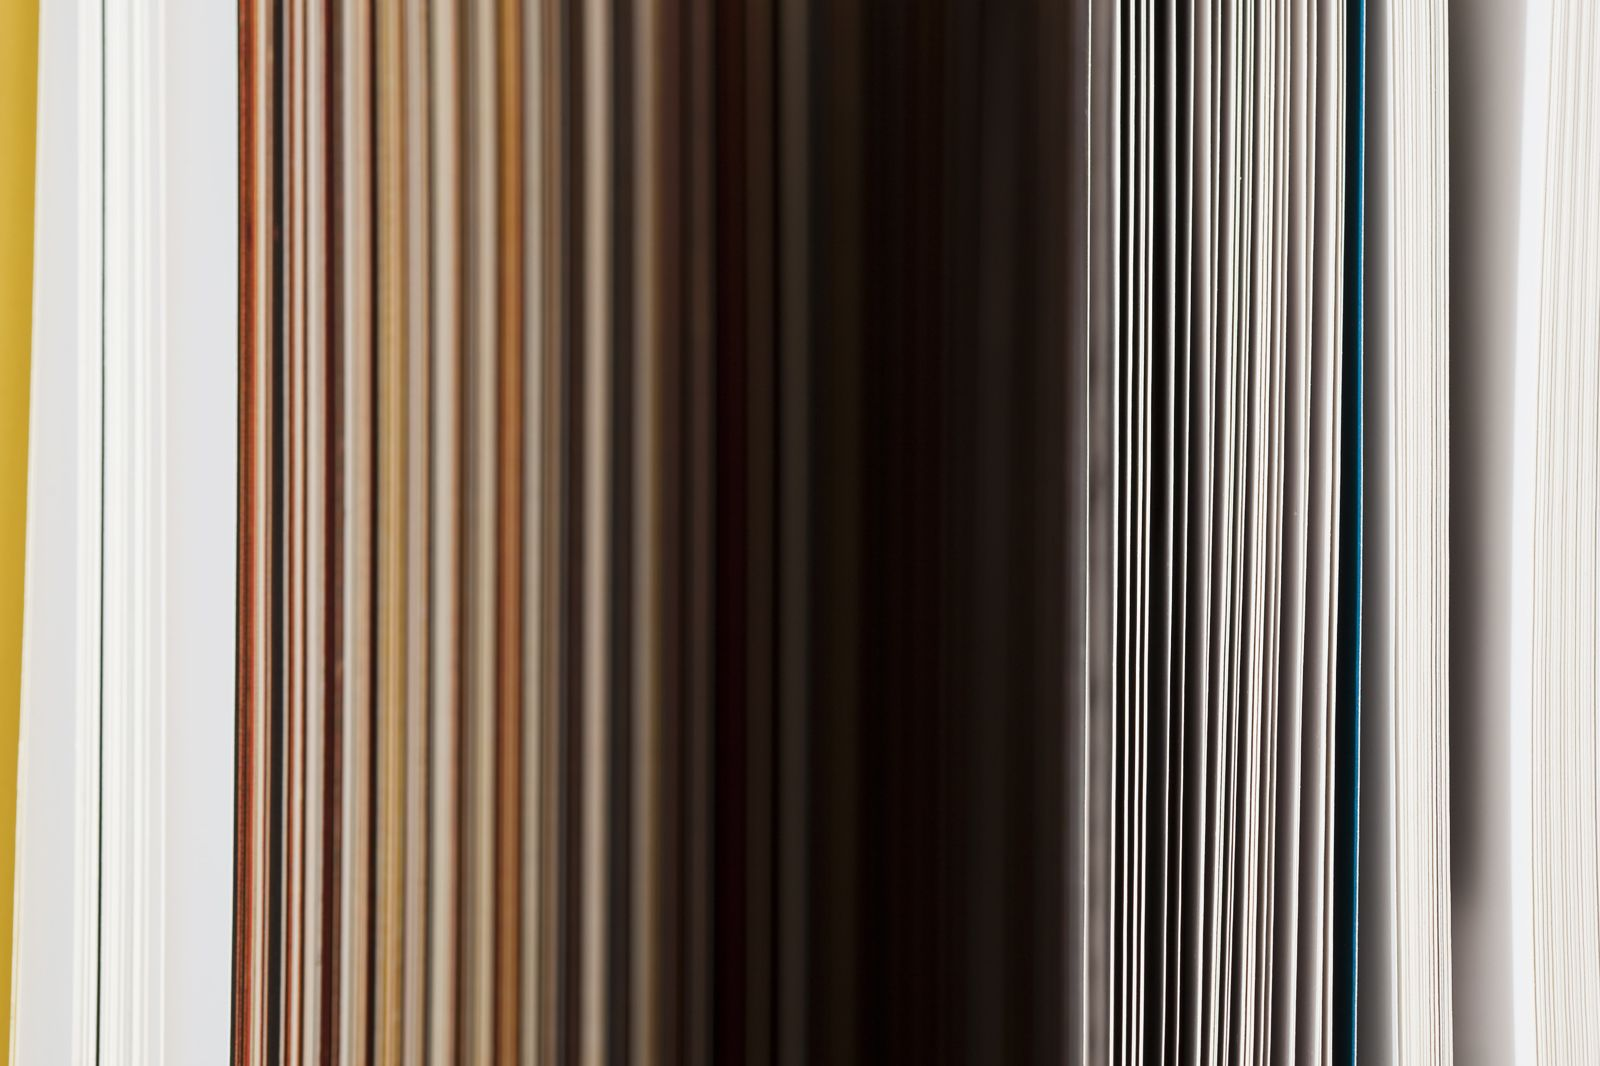 The Edge of Vision, from the series Standing Open,​ 2011. Archival pigment print, 16 x 22 or 24 x 30 inches.